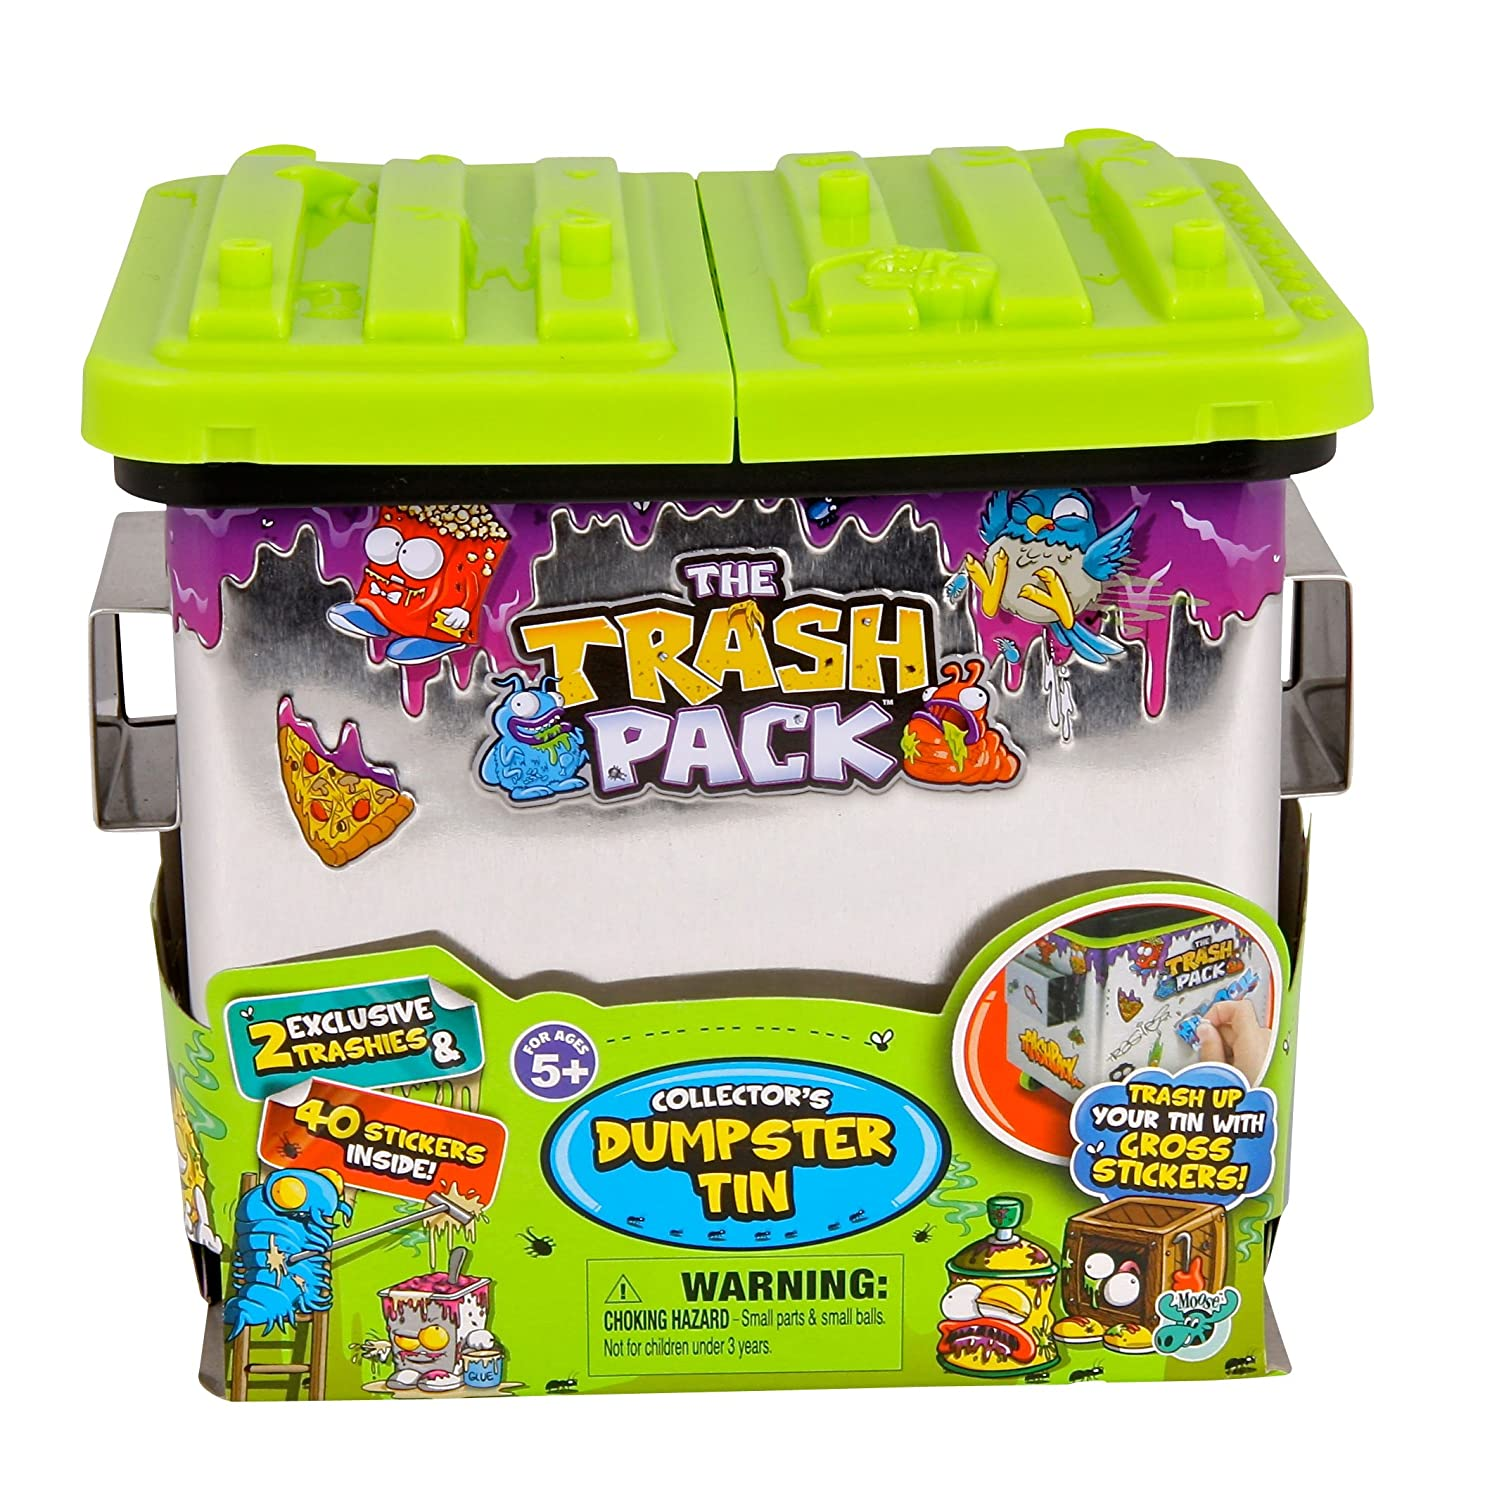 Trash Pack Dumpster Tin by Trash Pack: Amazon.es: Juguetes y ...